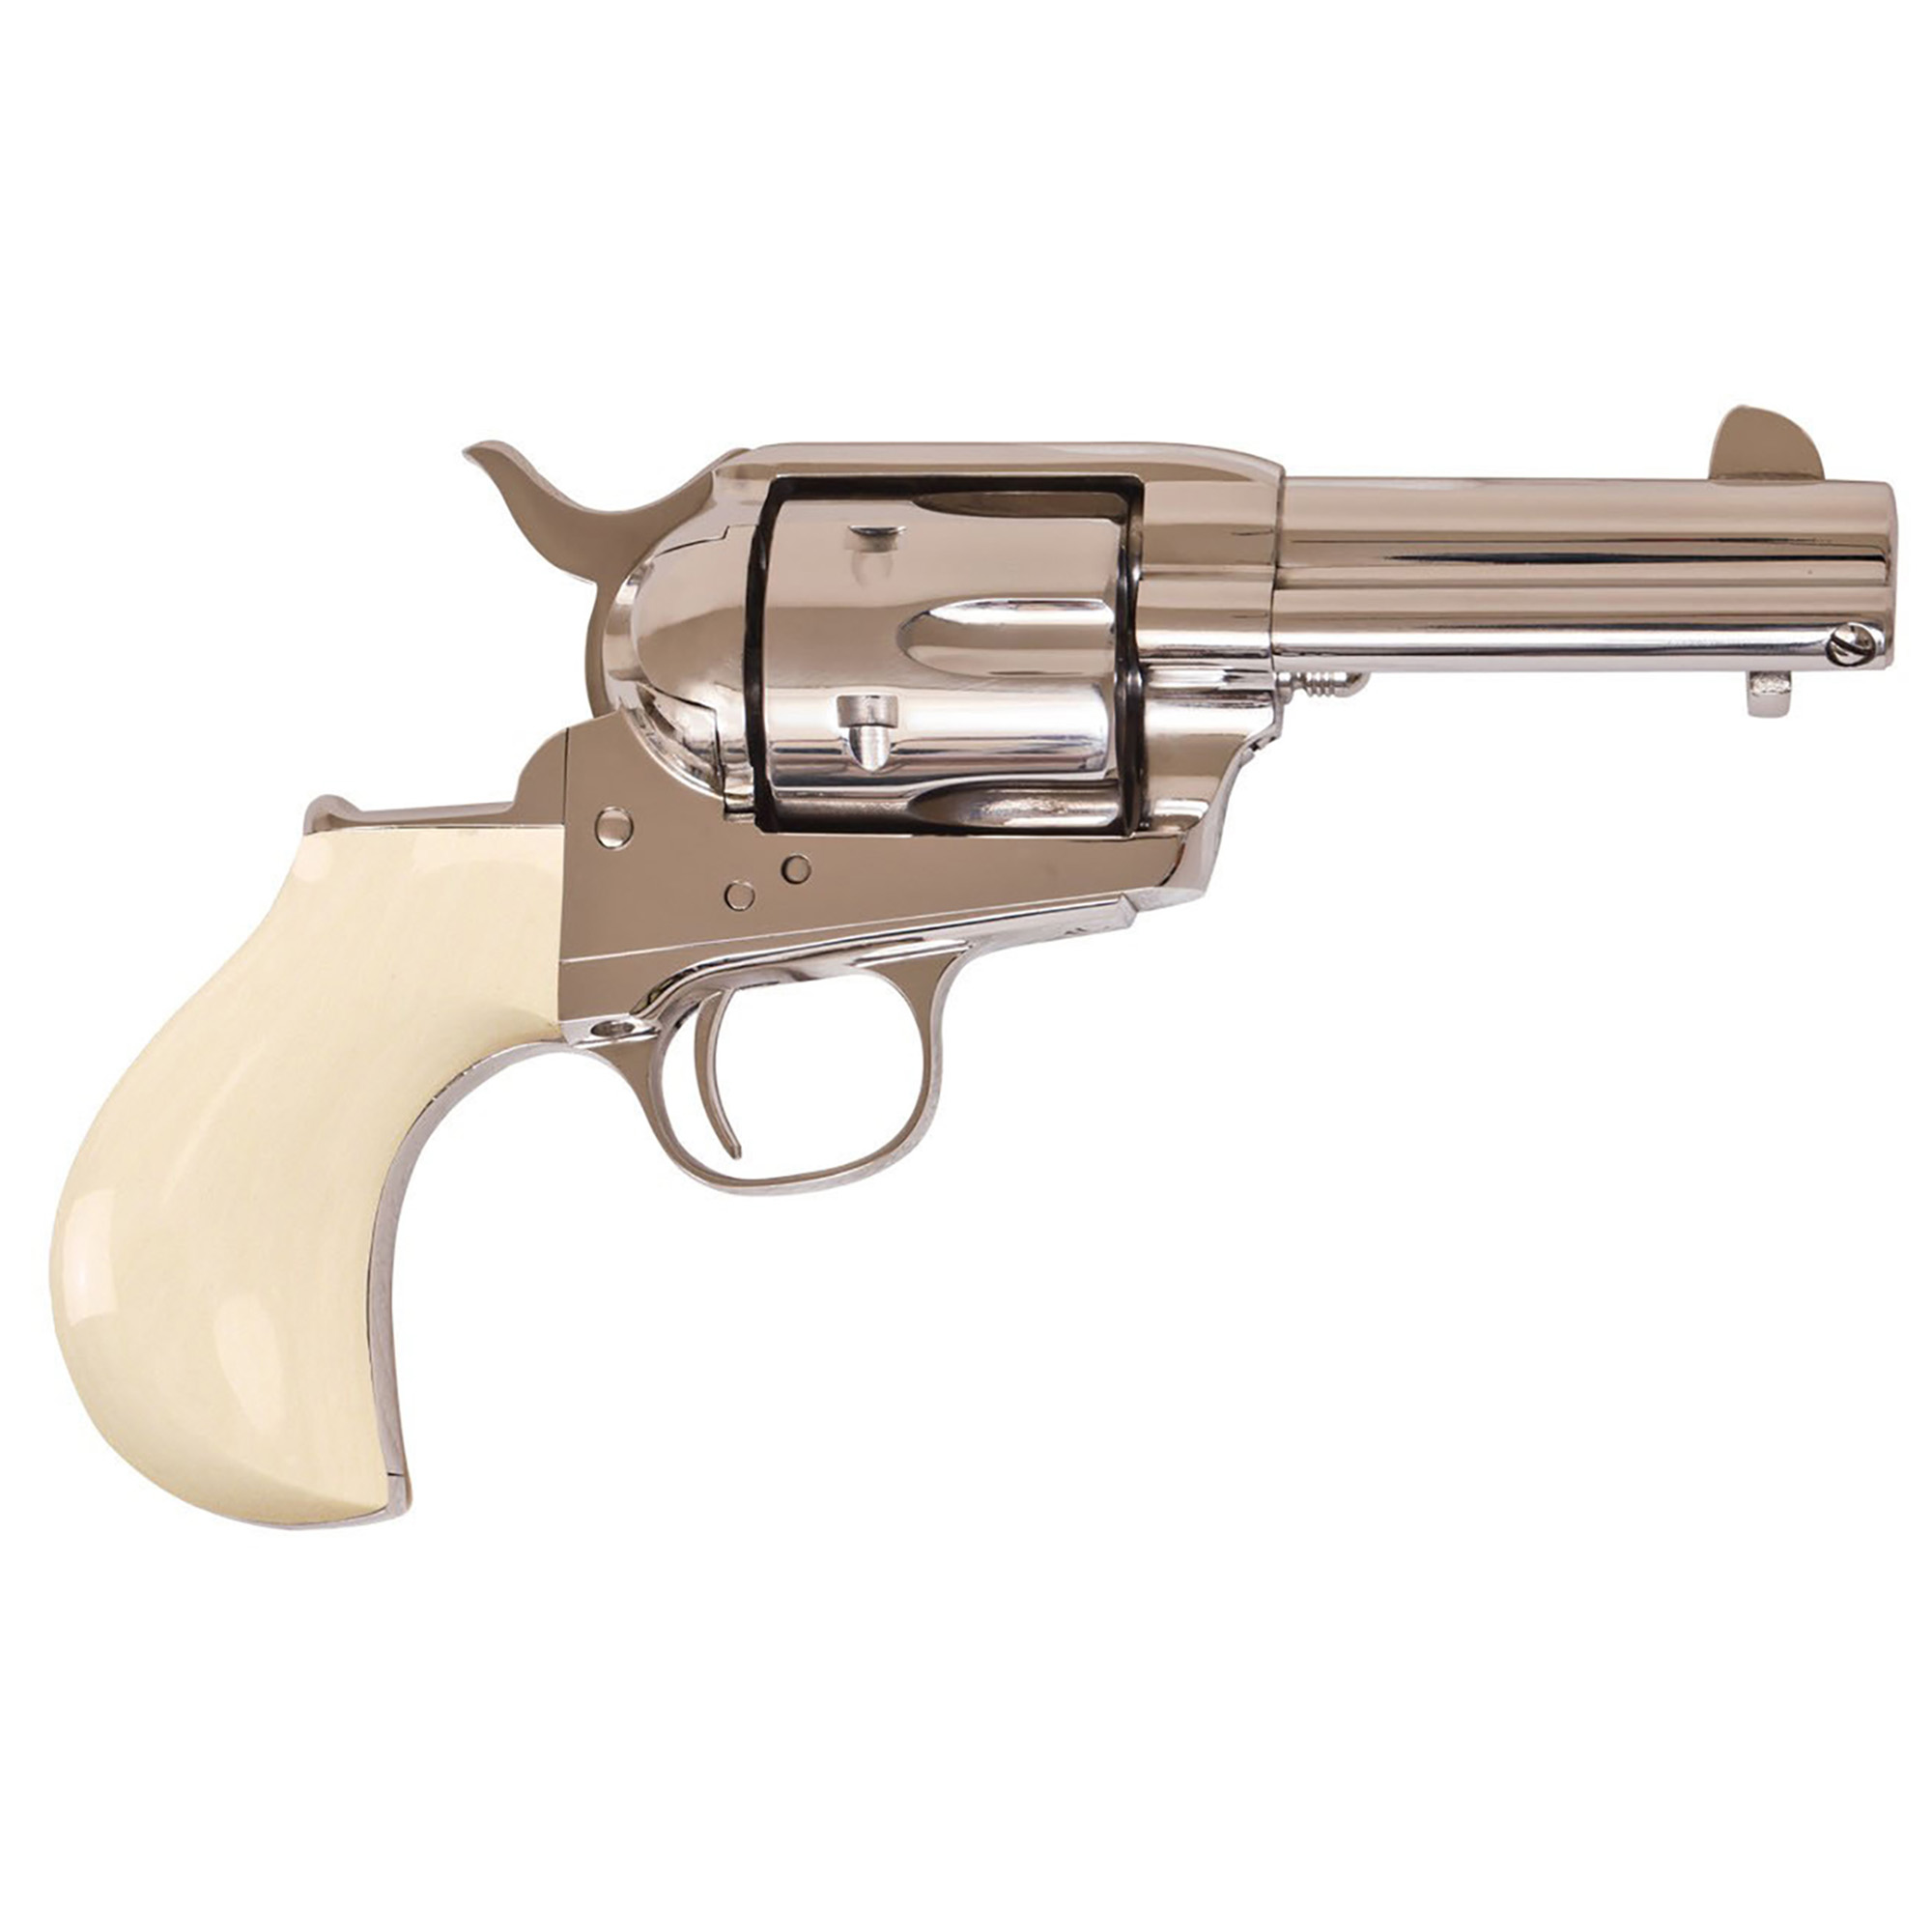 "Cimarron Firearms' Doc Holliday combo is just your game. Each 3 1/2-inch"" nickel-plated revolver has simulated ""Ultra Ivory(TM)"" birds head grips and ""Doc Holliday"" engraved into the back strap"" along with the special number of the gun. Chambered for the .45 Colt cartridge"" this handy six-gun makes a dandy ""fifth ace."""